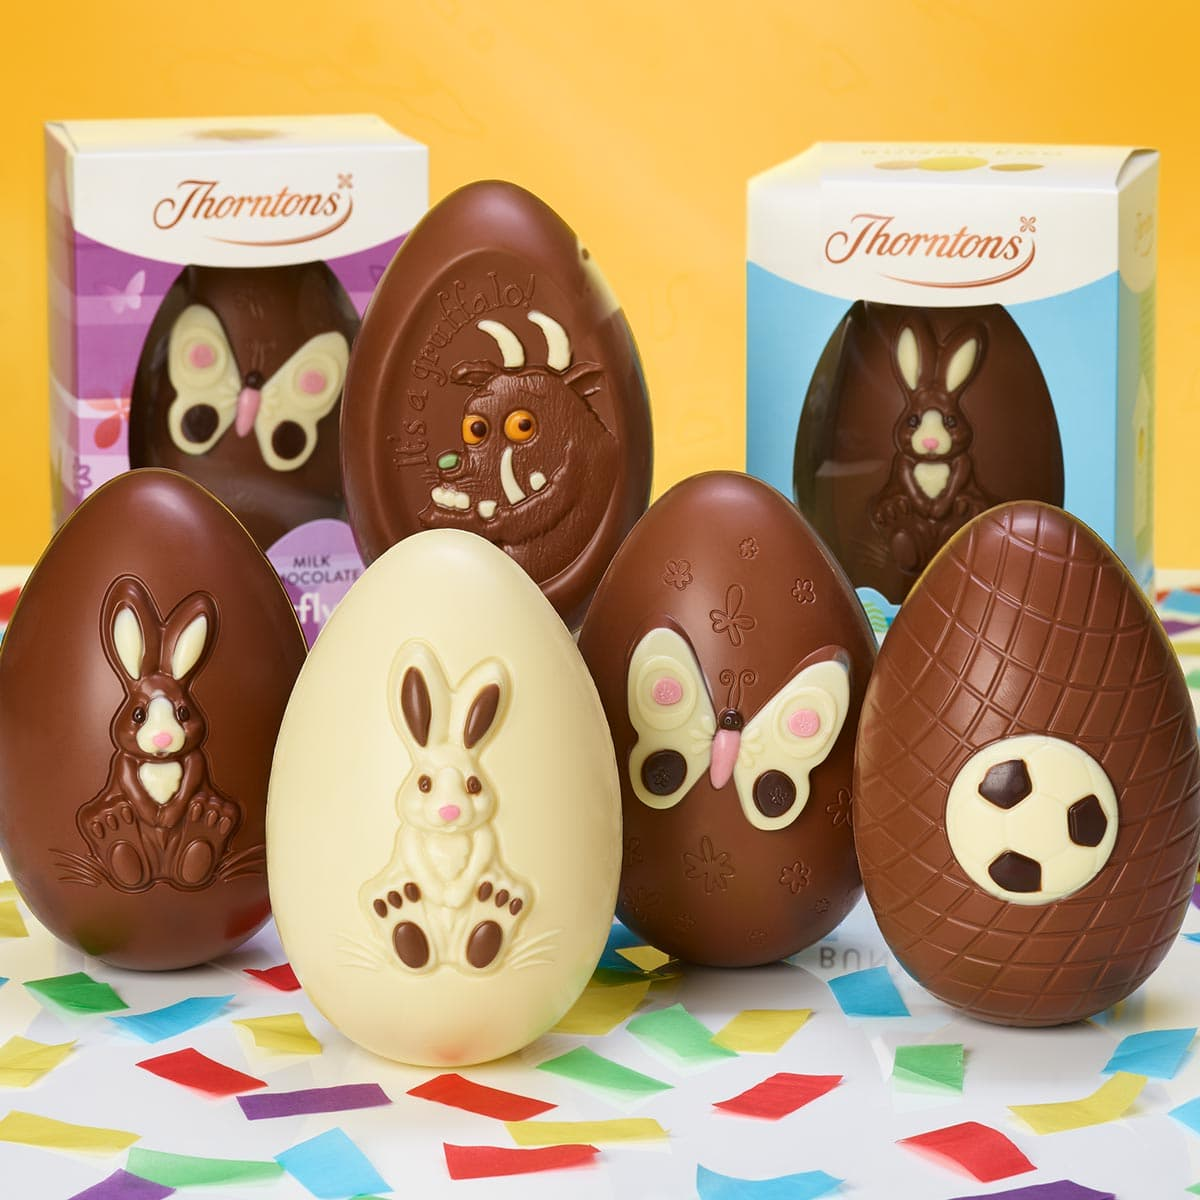 An assortment of Easter eggs in and out of boxes with bunny, butterfly and football images on them